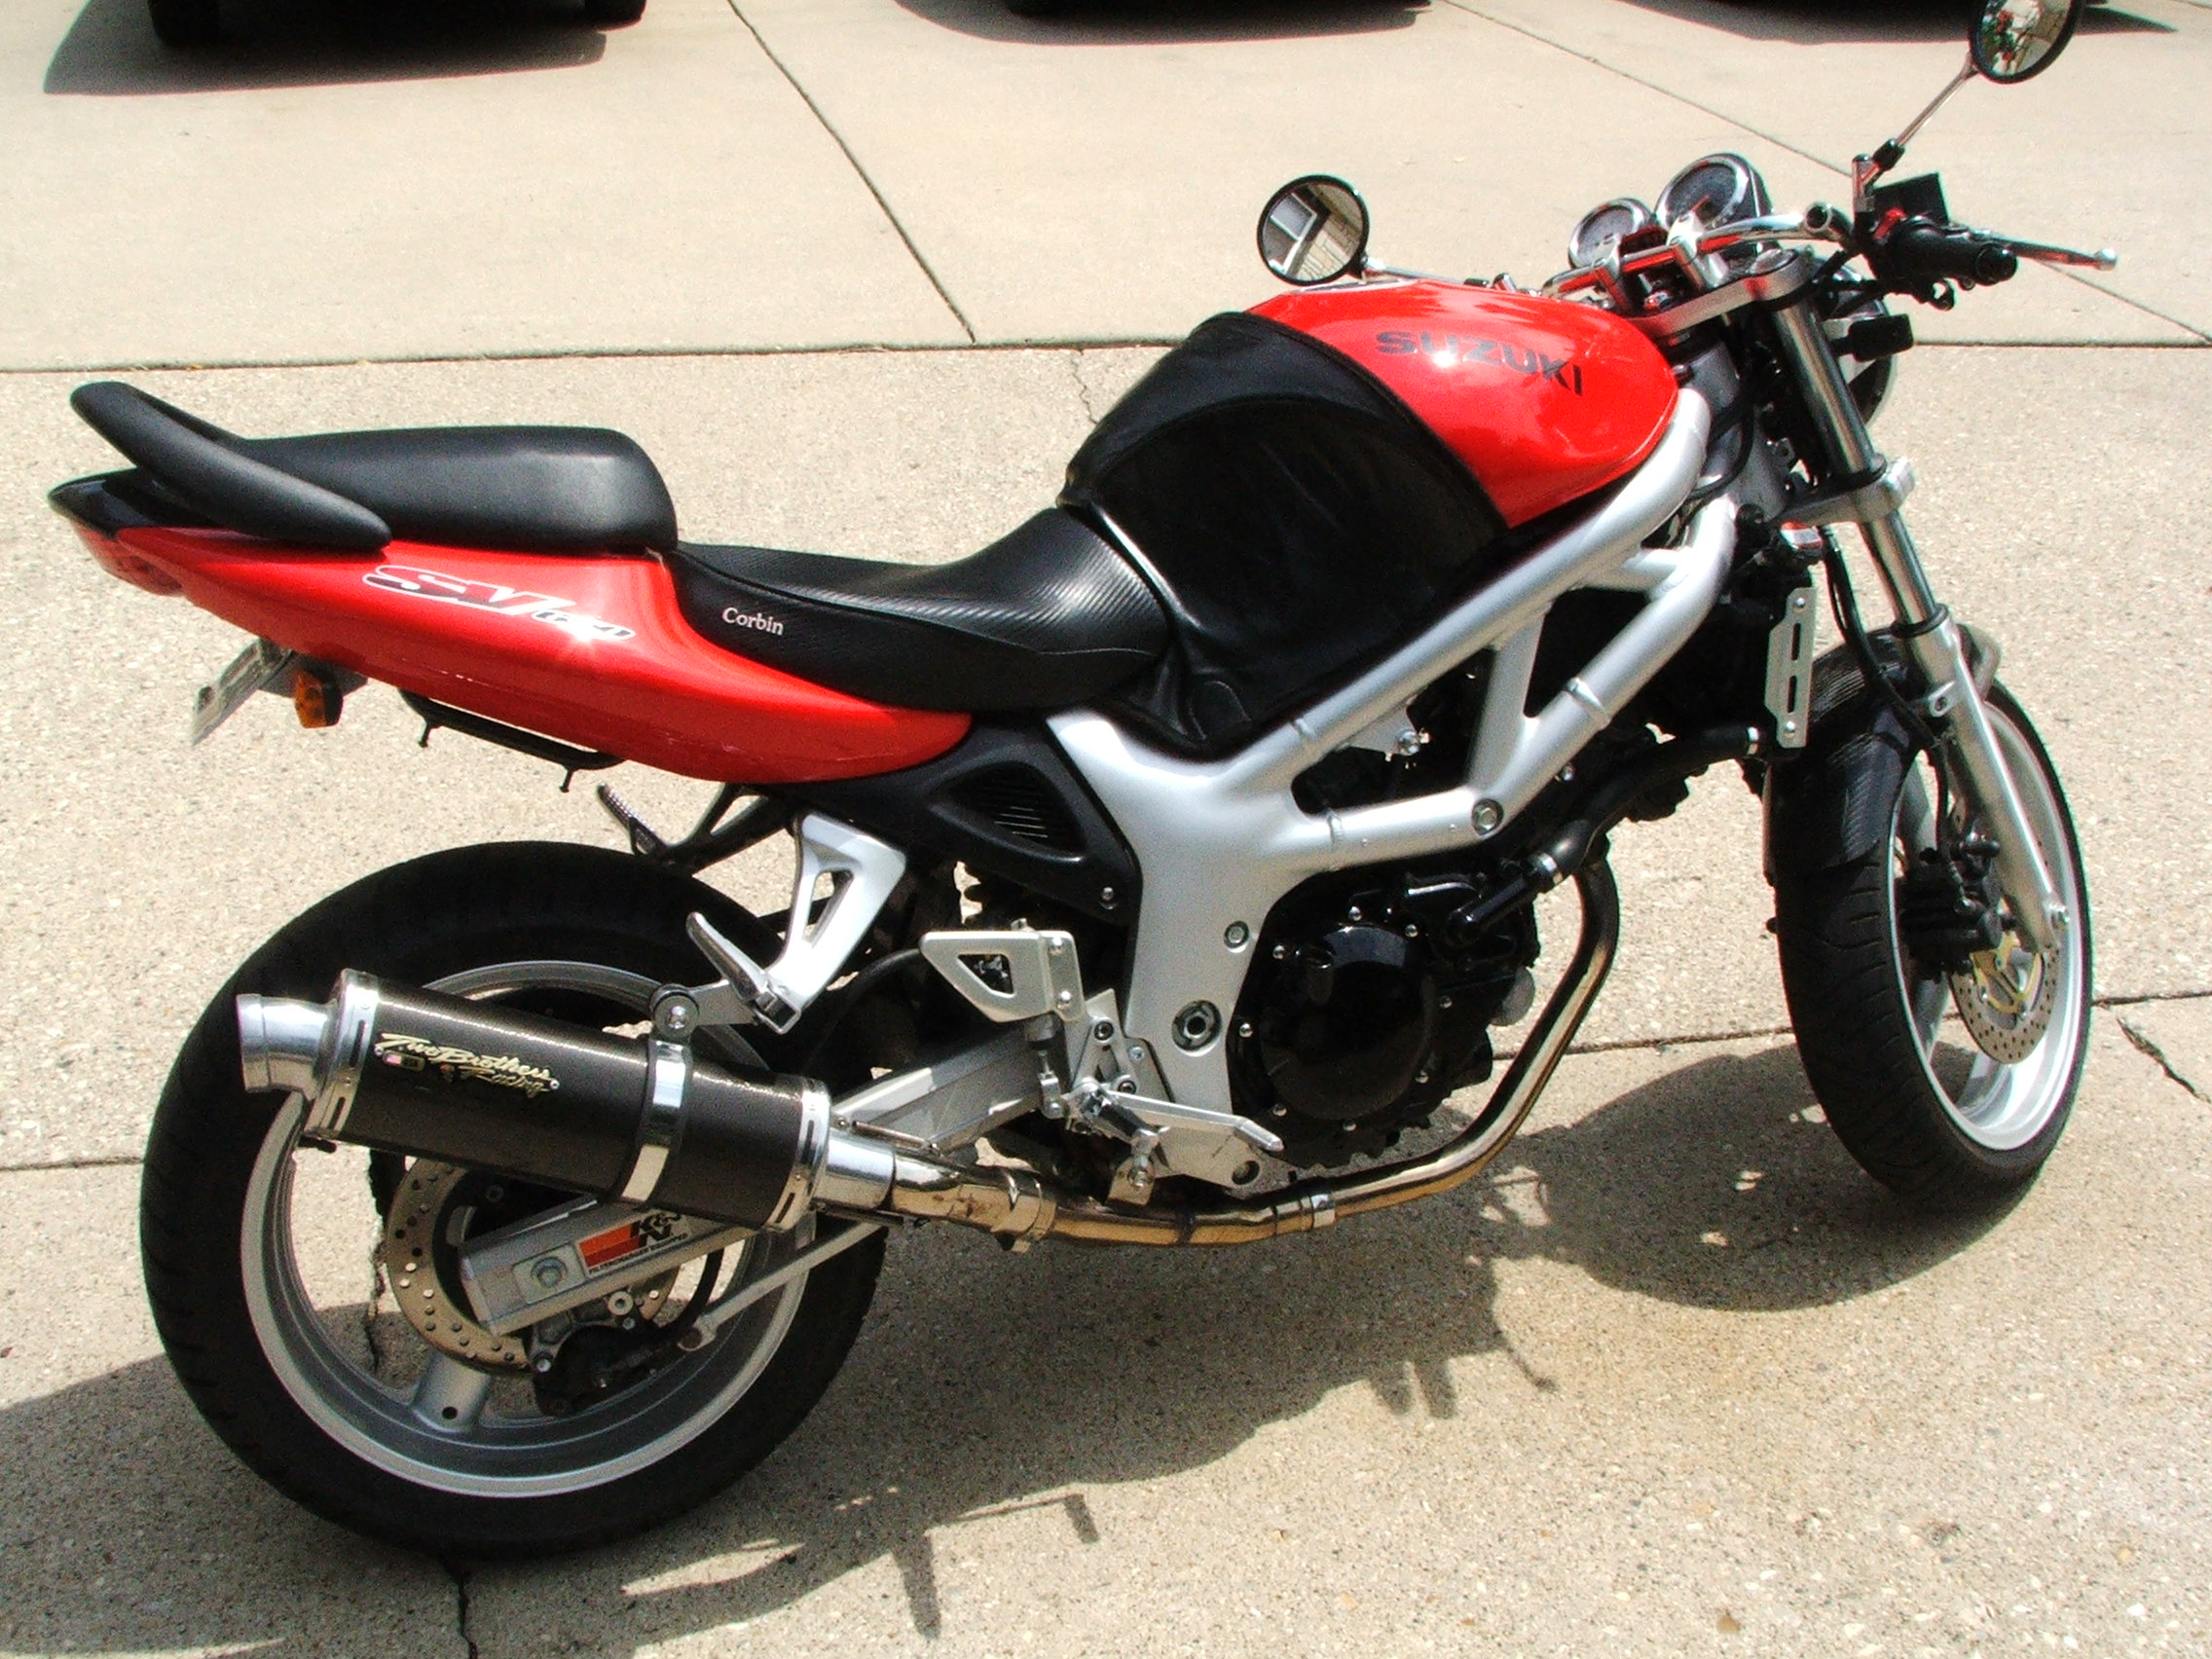 1999 suzuki sv 650 pics specs and information. Black Bedroom Furniture Sets. Home Design Ideas